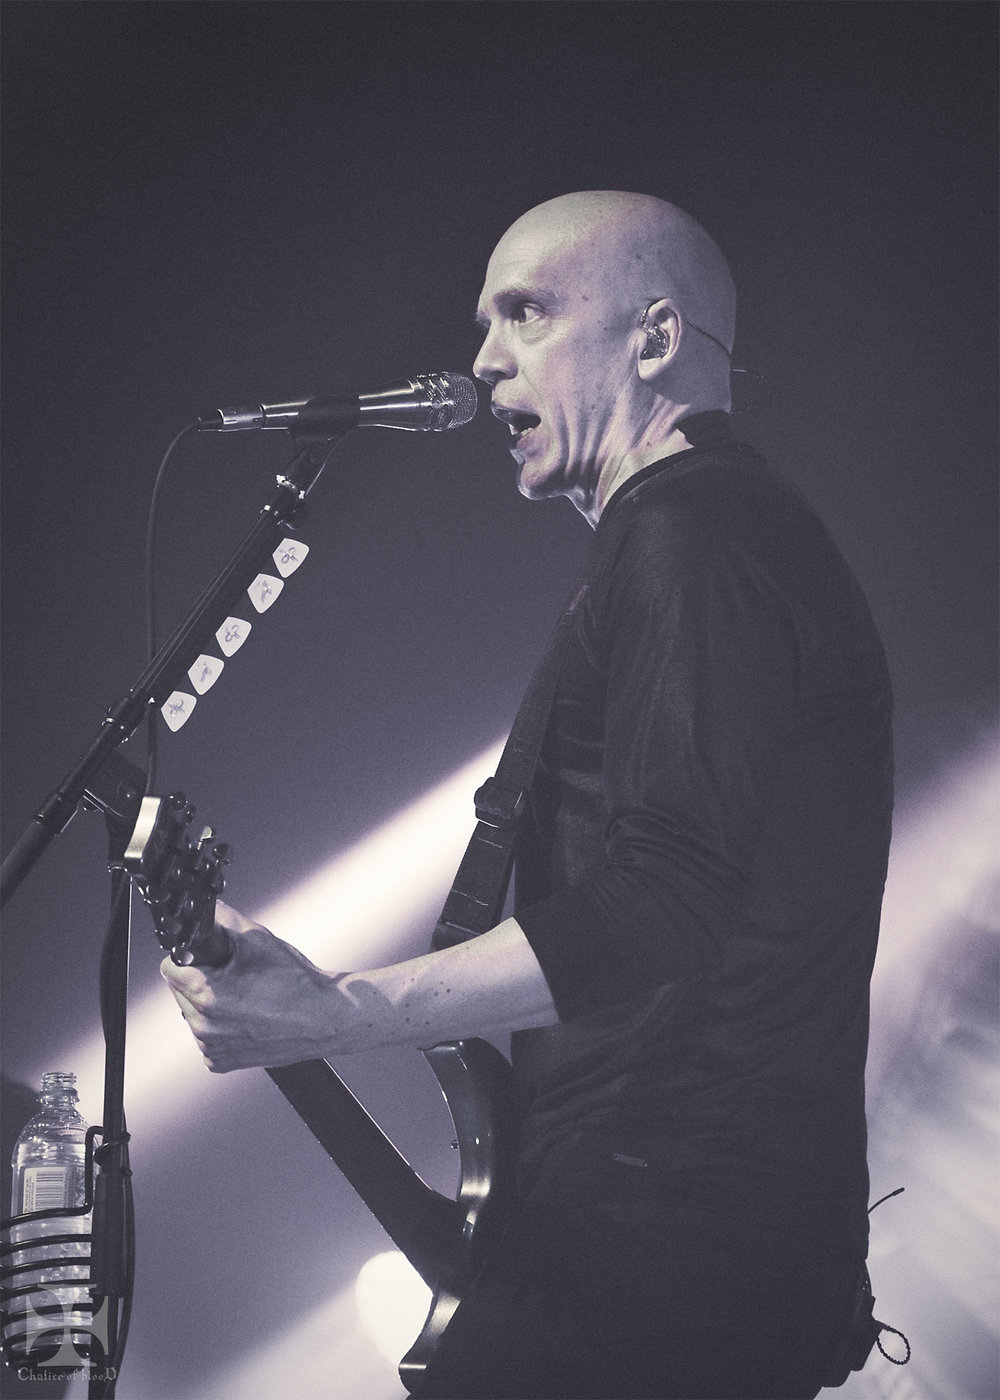 2017.05-Devin-Townsend---11-Exposure-watermarked.jpg